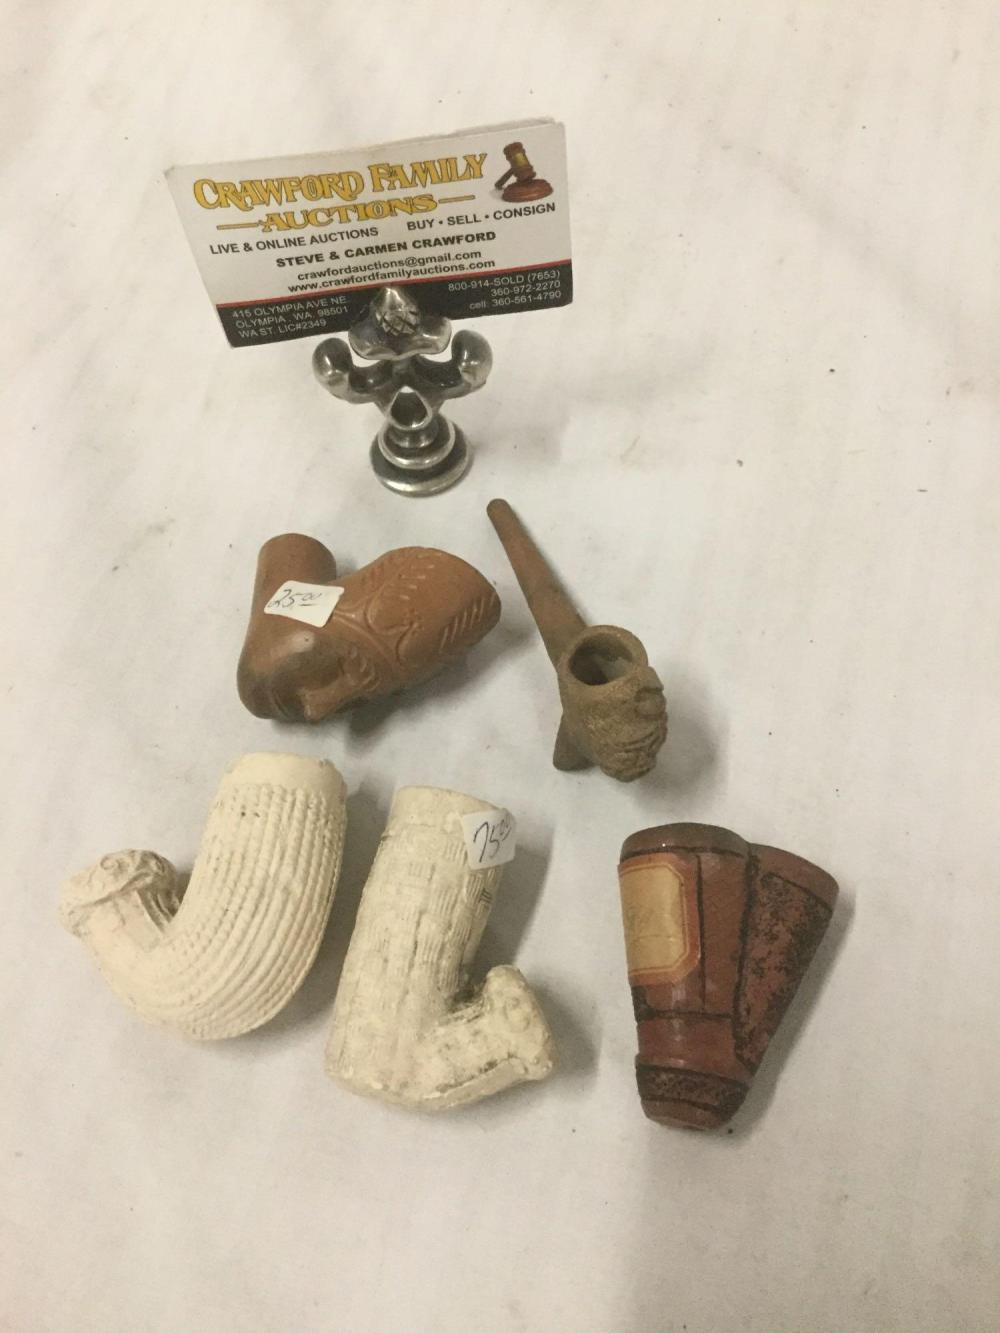 Lot 162: Collection of 5 vintage and antique clay pipe pieces - see pics